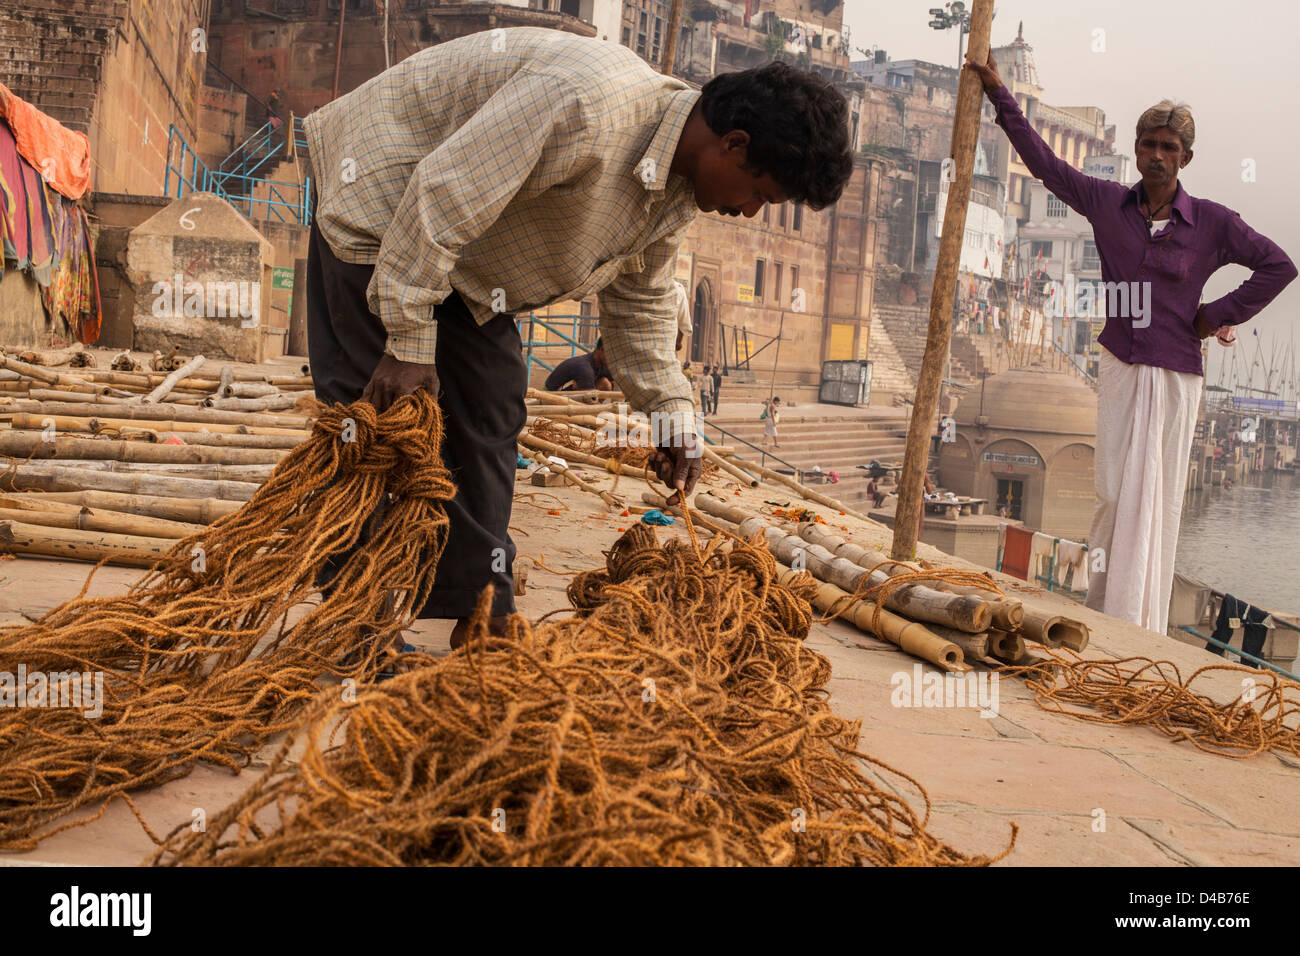 labourers on the ghats of Varanasi, India - Stock Image